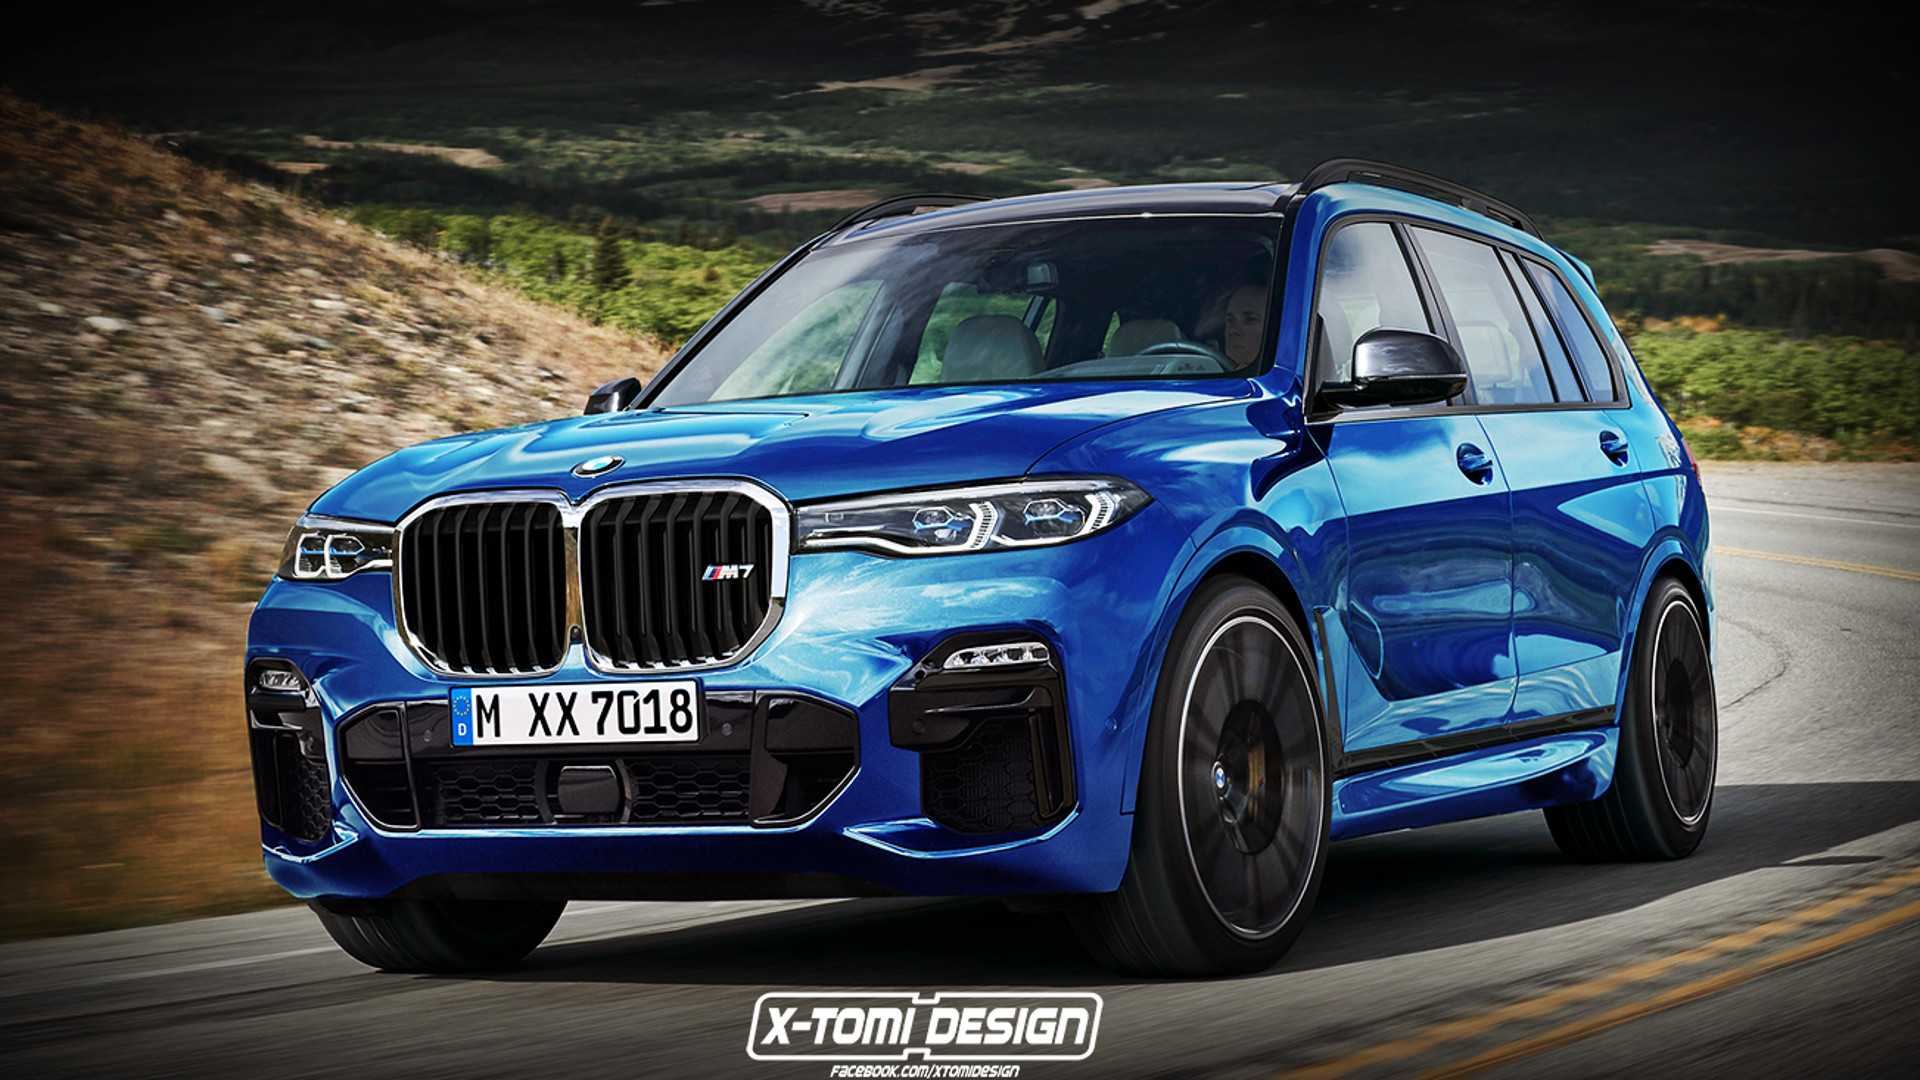 47 All New 2020 BMW X7 Suv Series Concept